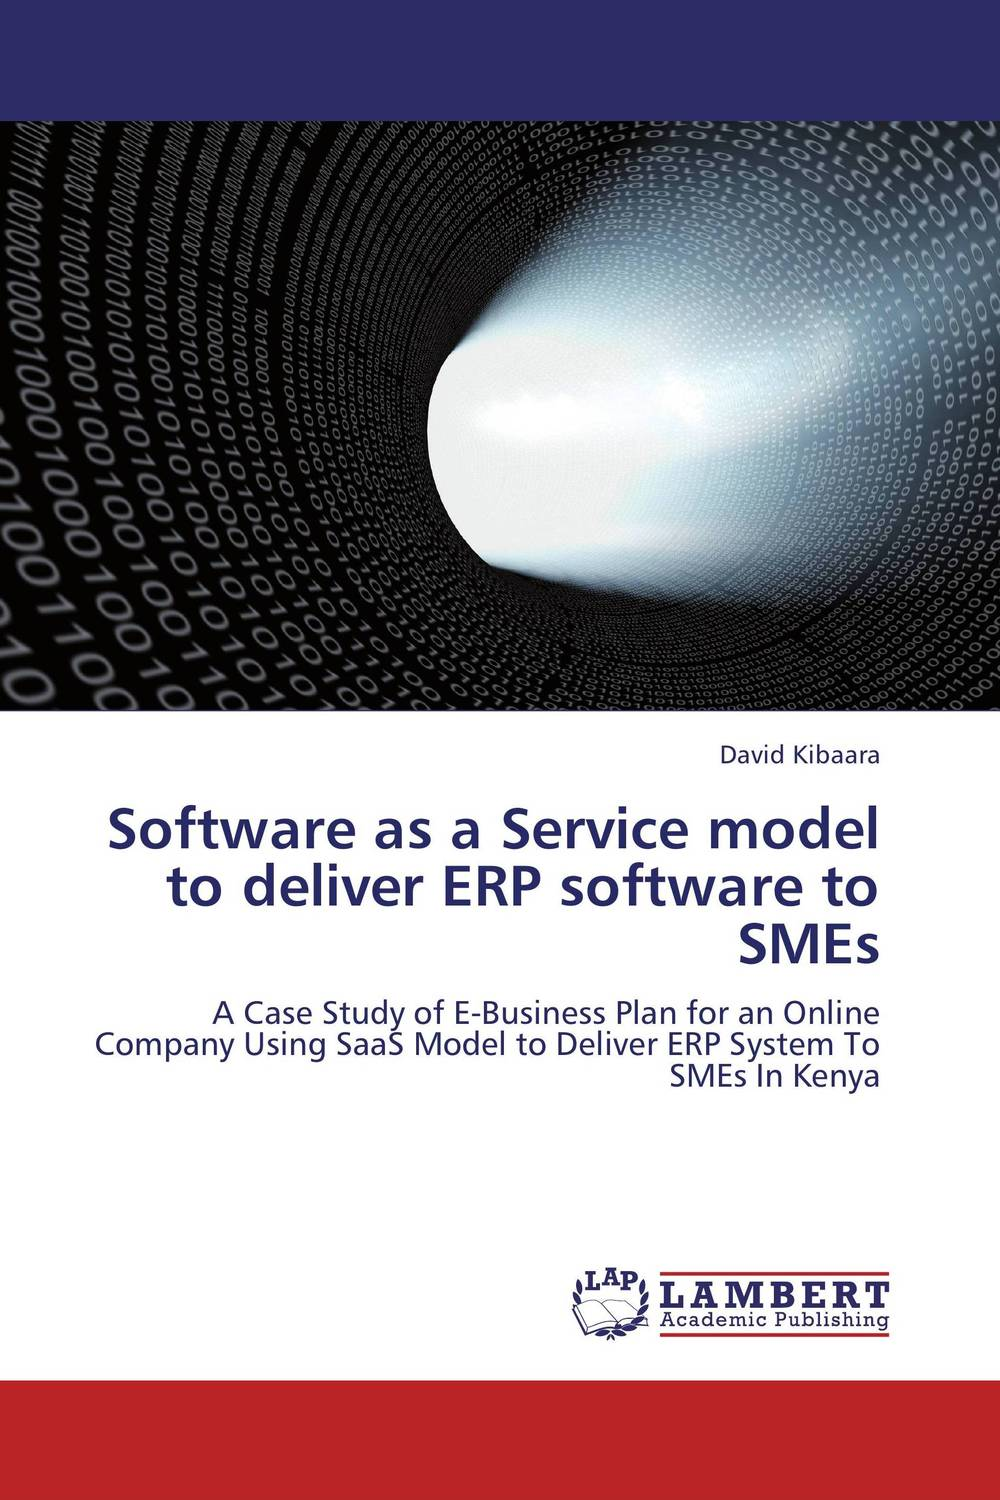 Software as a Service model to deliver ERP software to SMEs peter block stewardship choosing service over self interest